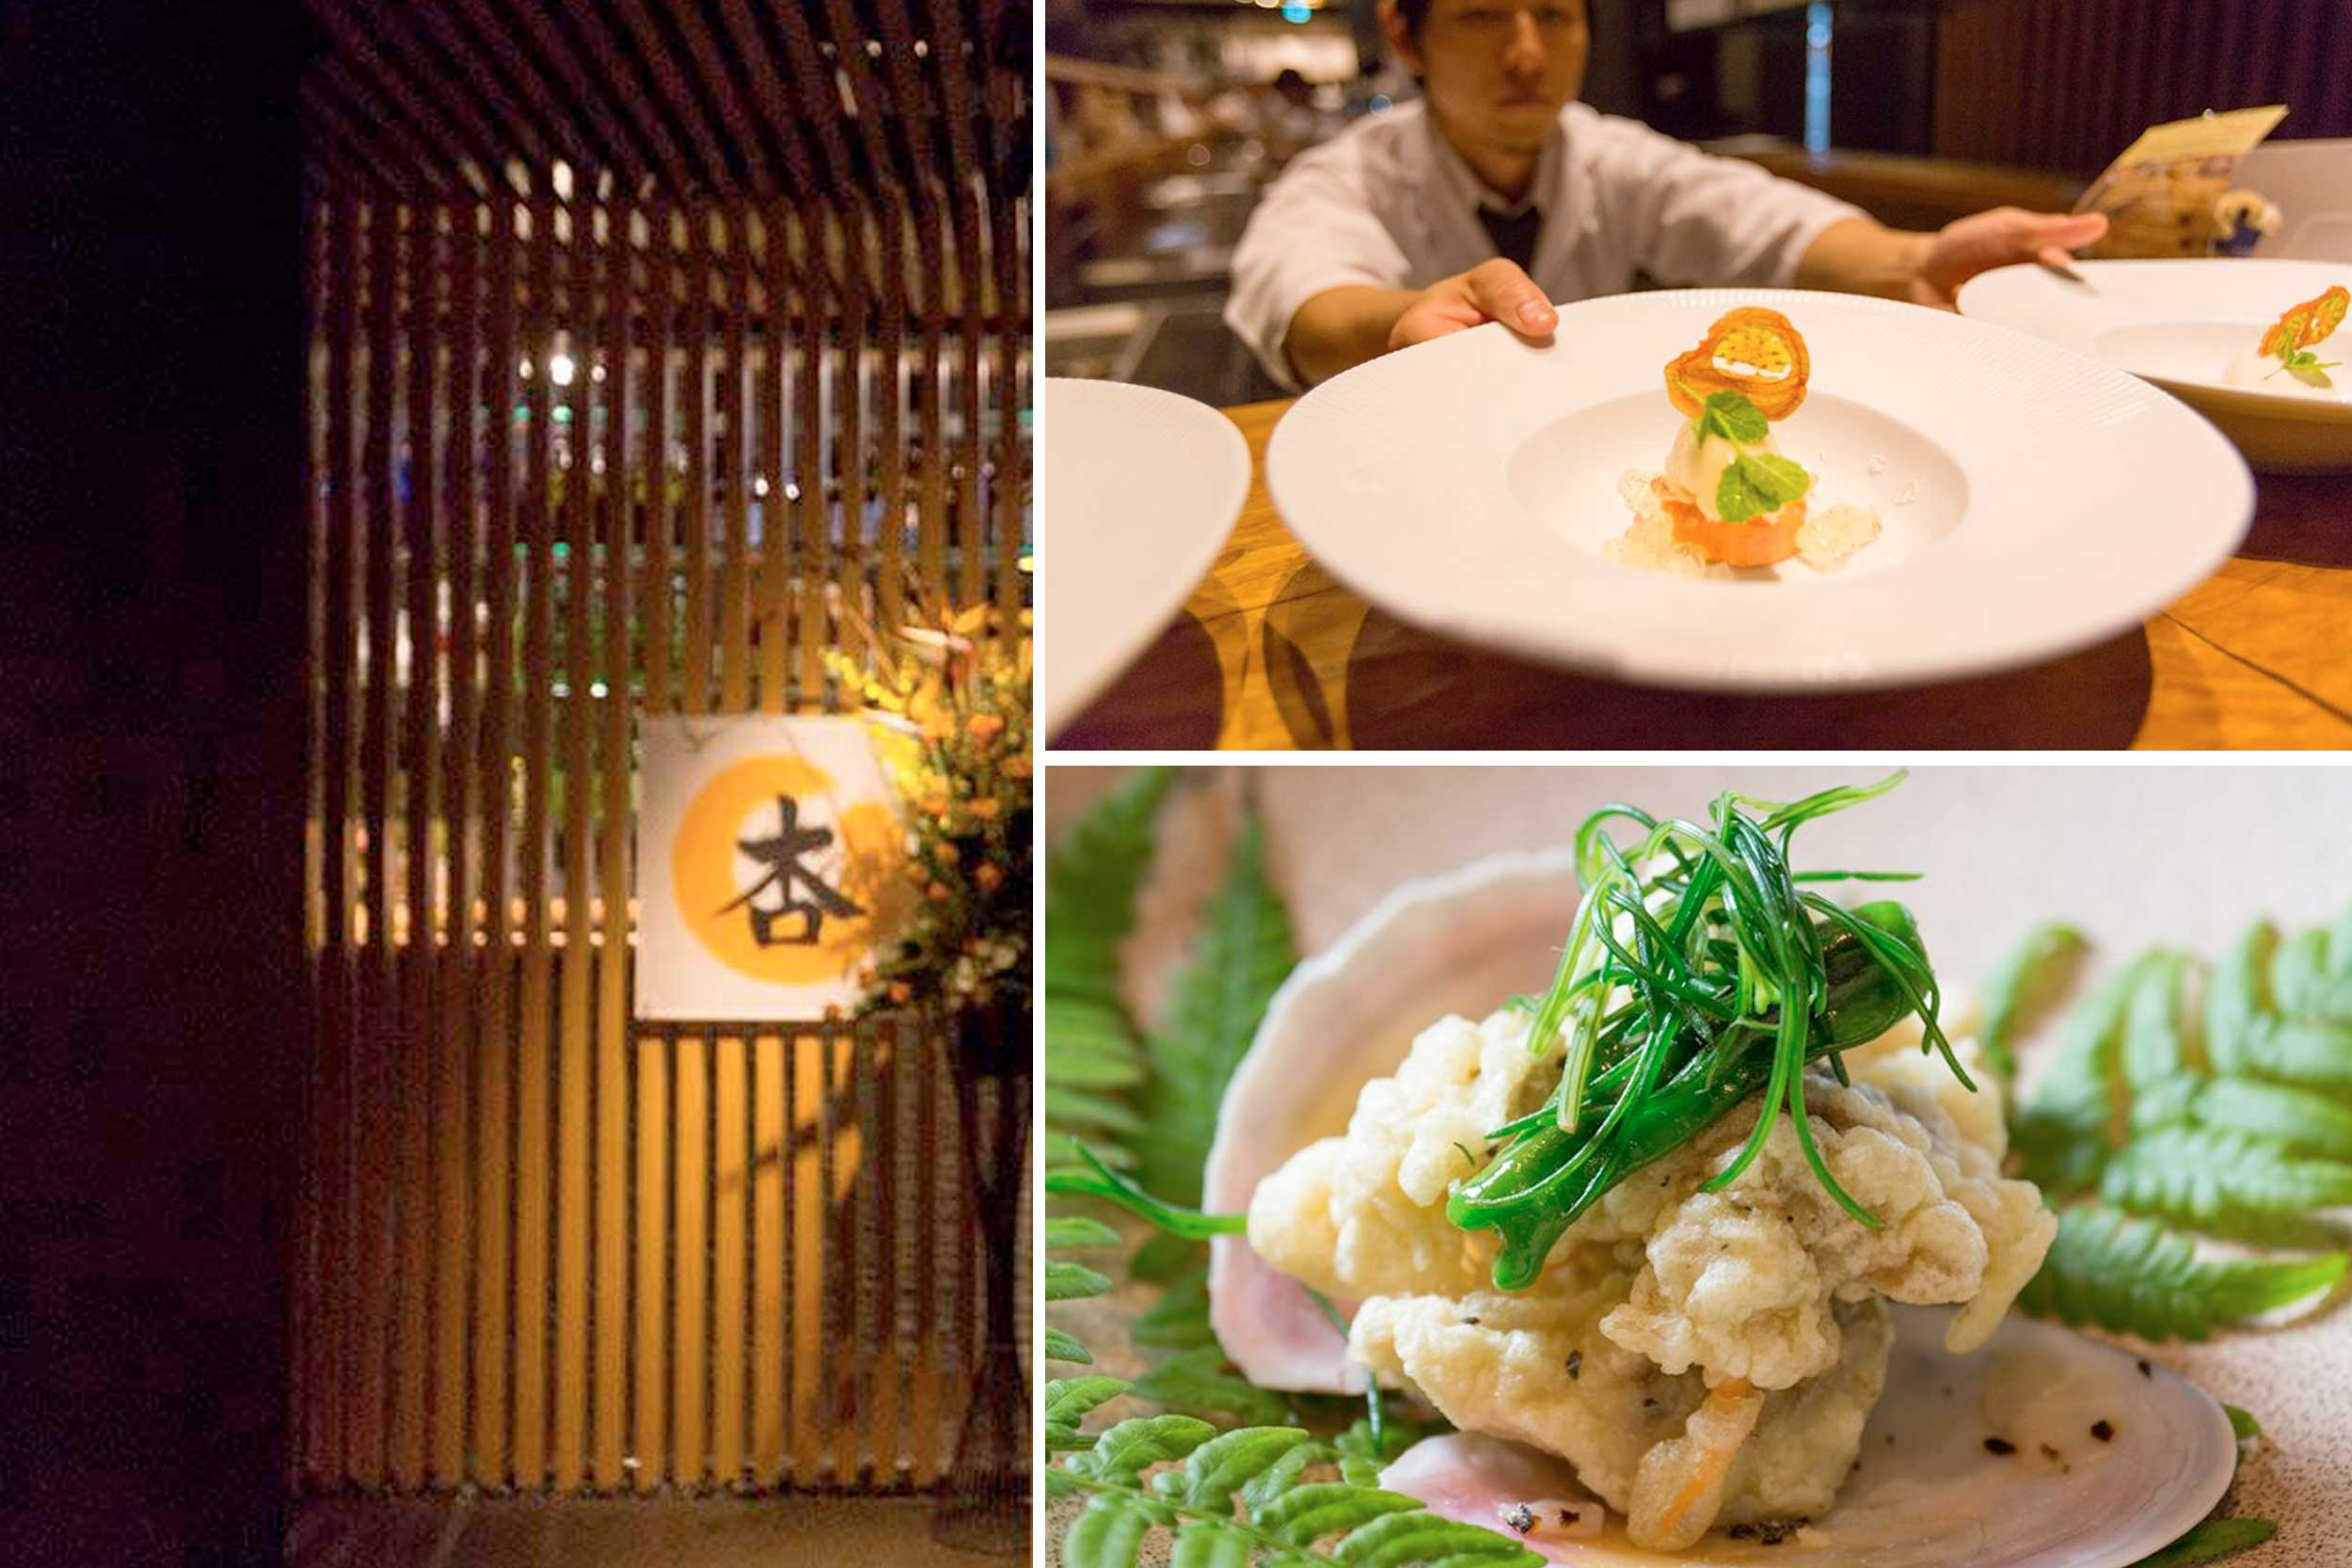 A collage of a slatted restaurant entryway and two of its food dishes at Ki Niseko, Japan